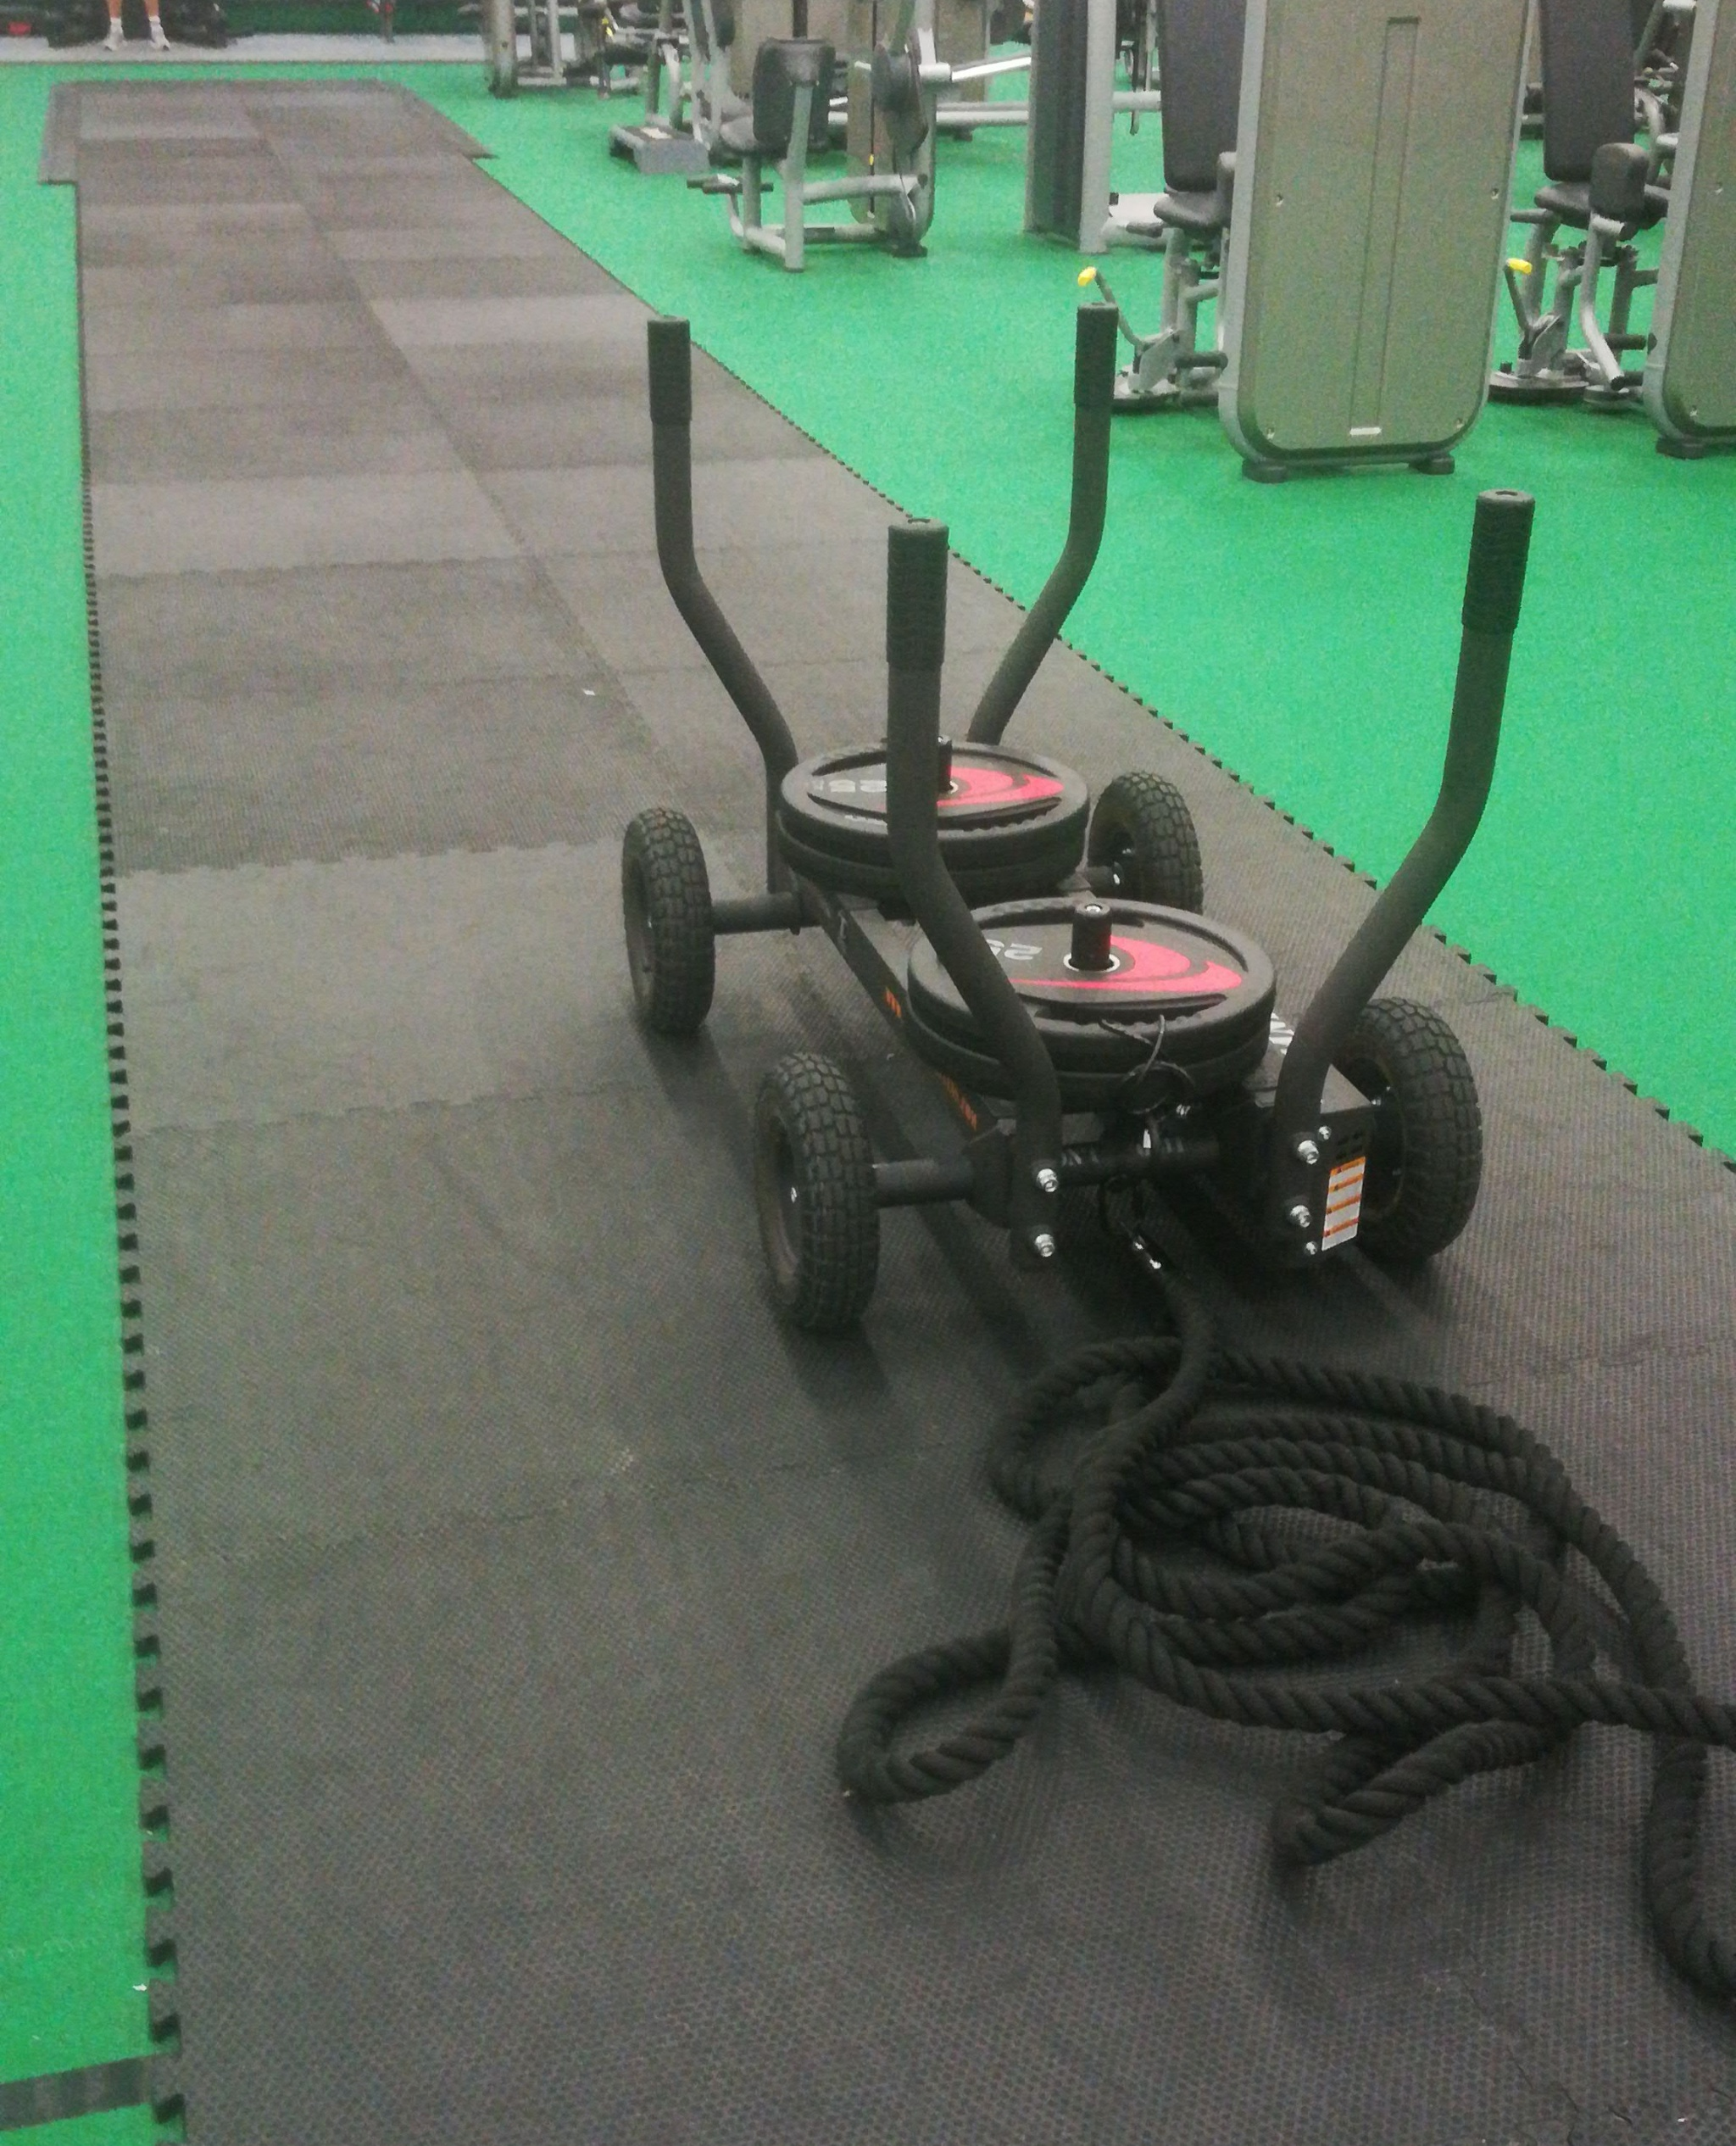 group fitness workouts sled